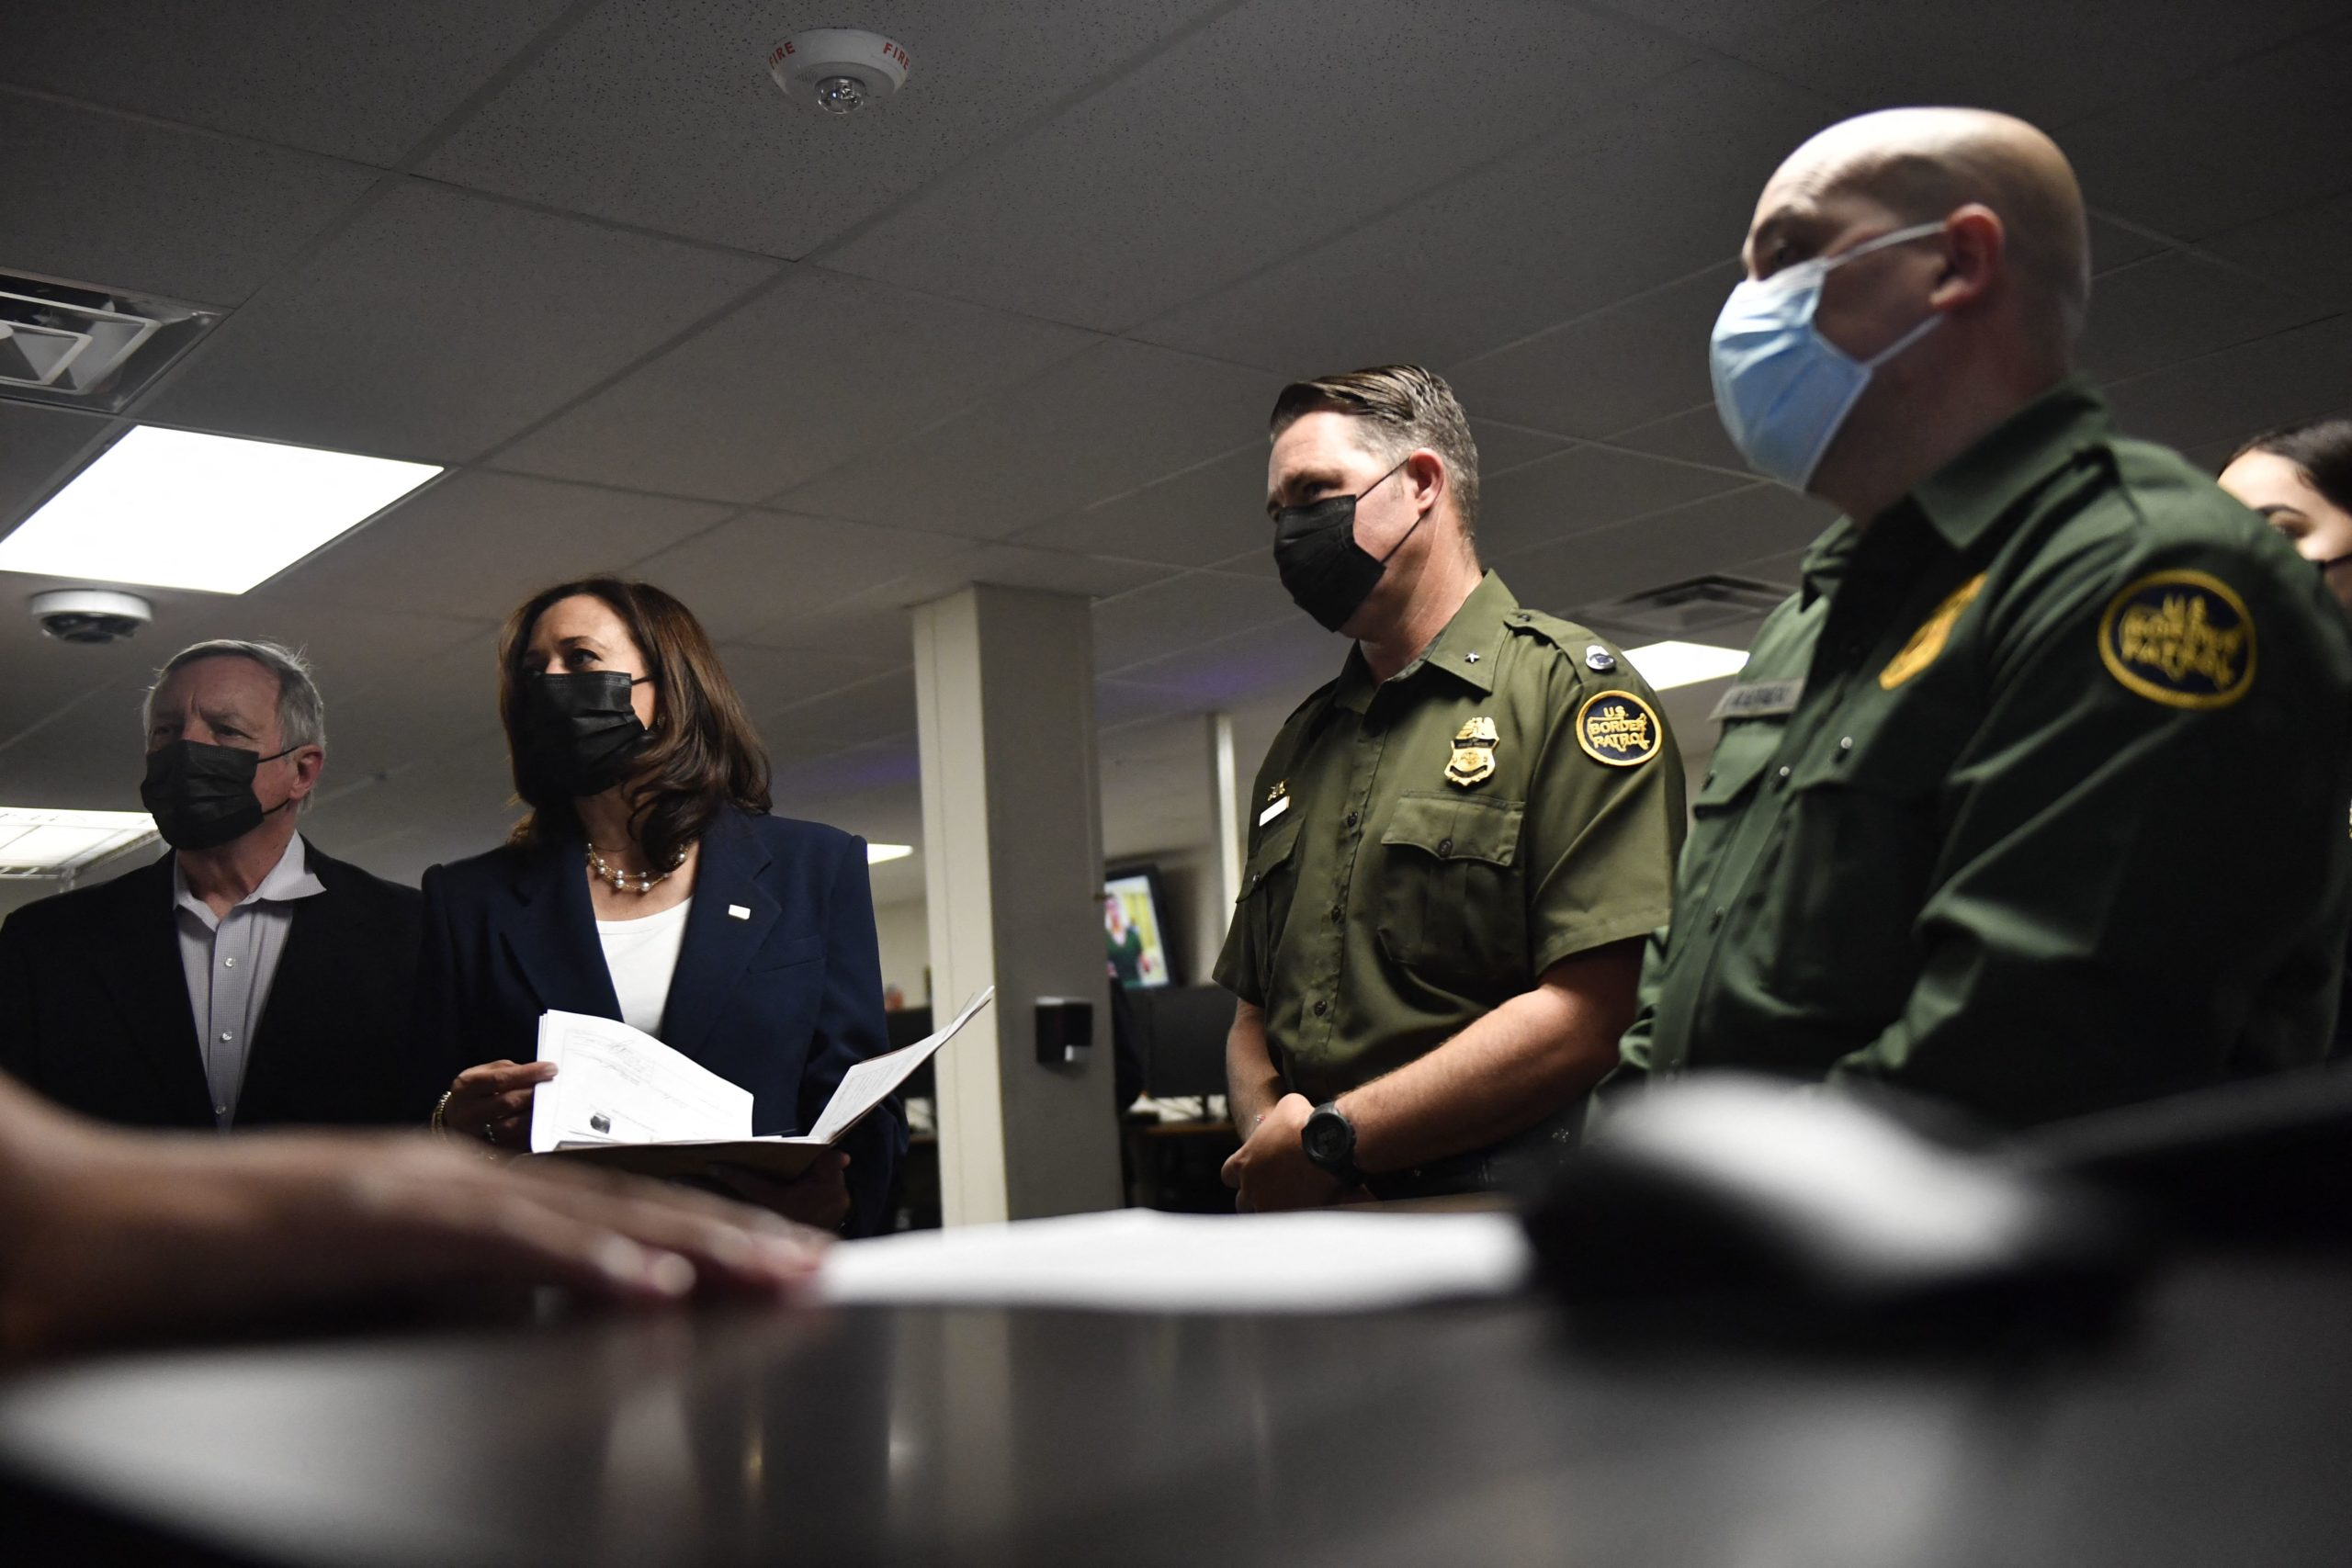 US Vice President Kamala Harris (2nd-L) tours the El Paso US Customs and Border Protection Central Processing Center, on June 25, 2021 in El Paso, Texas. (Photo by PATRICK T. FALLON/AFP via Getty Images)